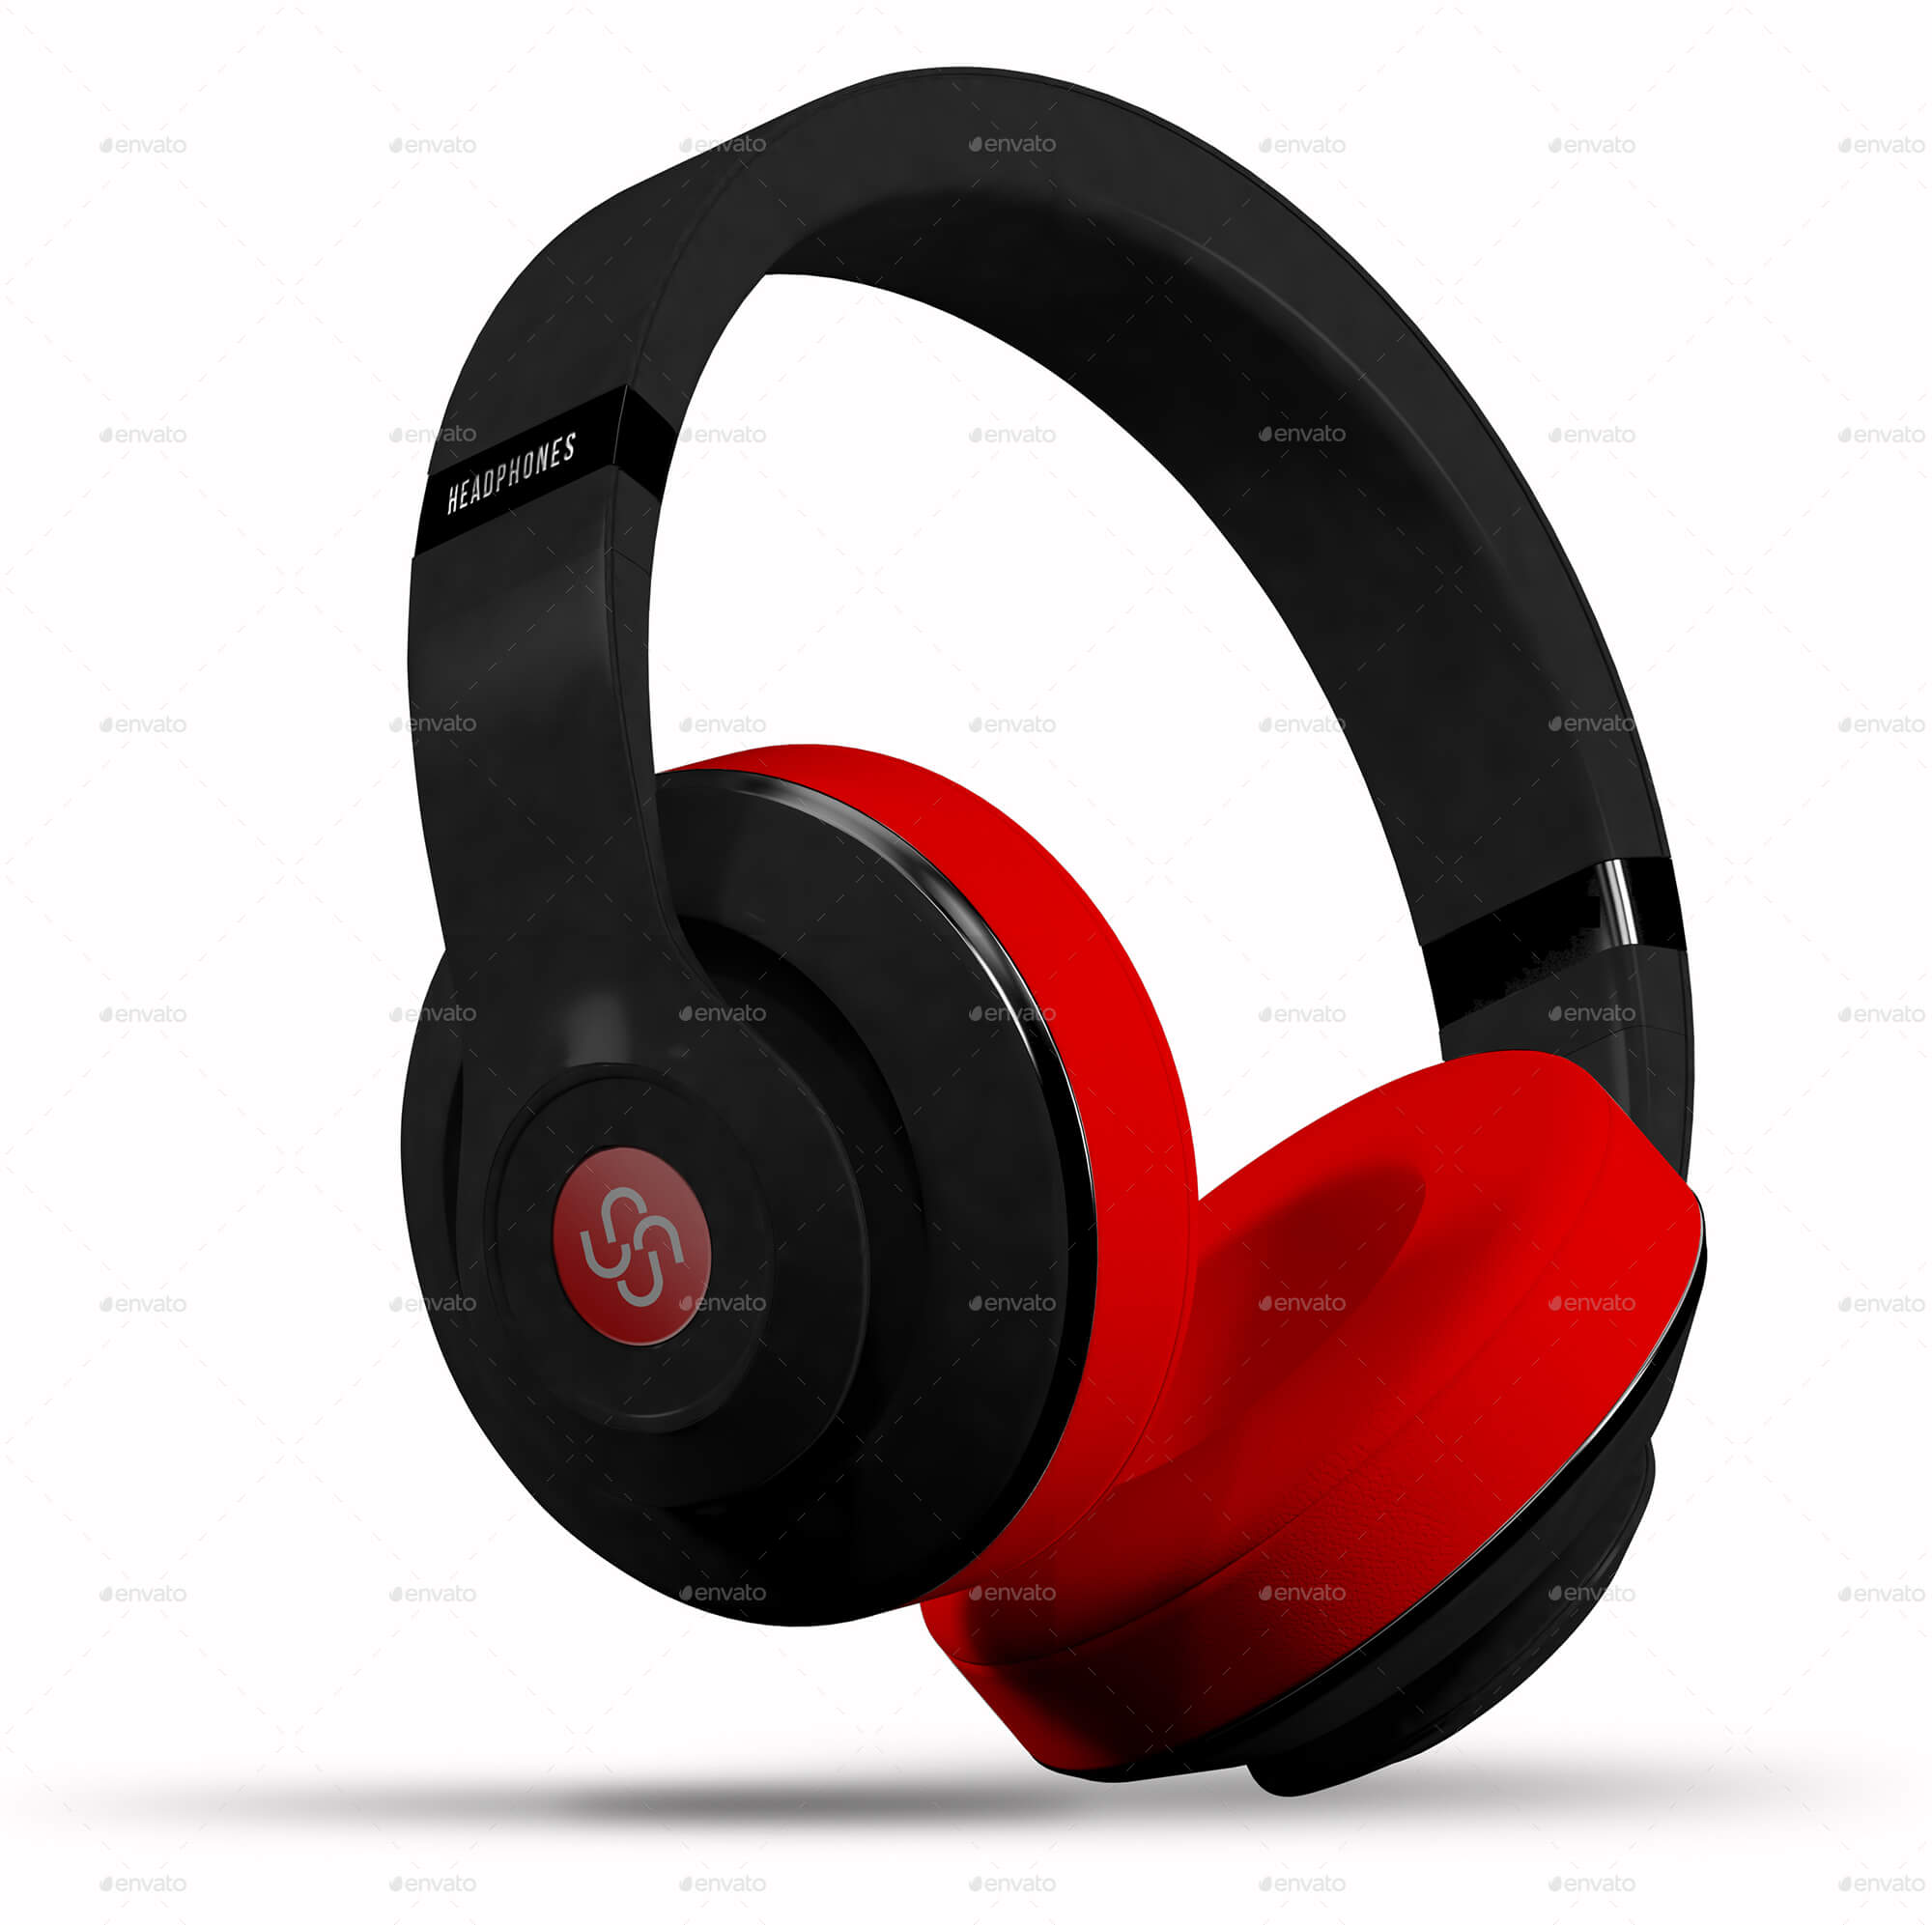 Headphones Mockup Pack